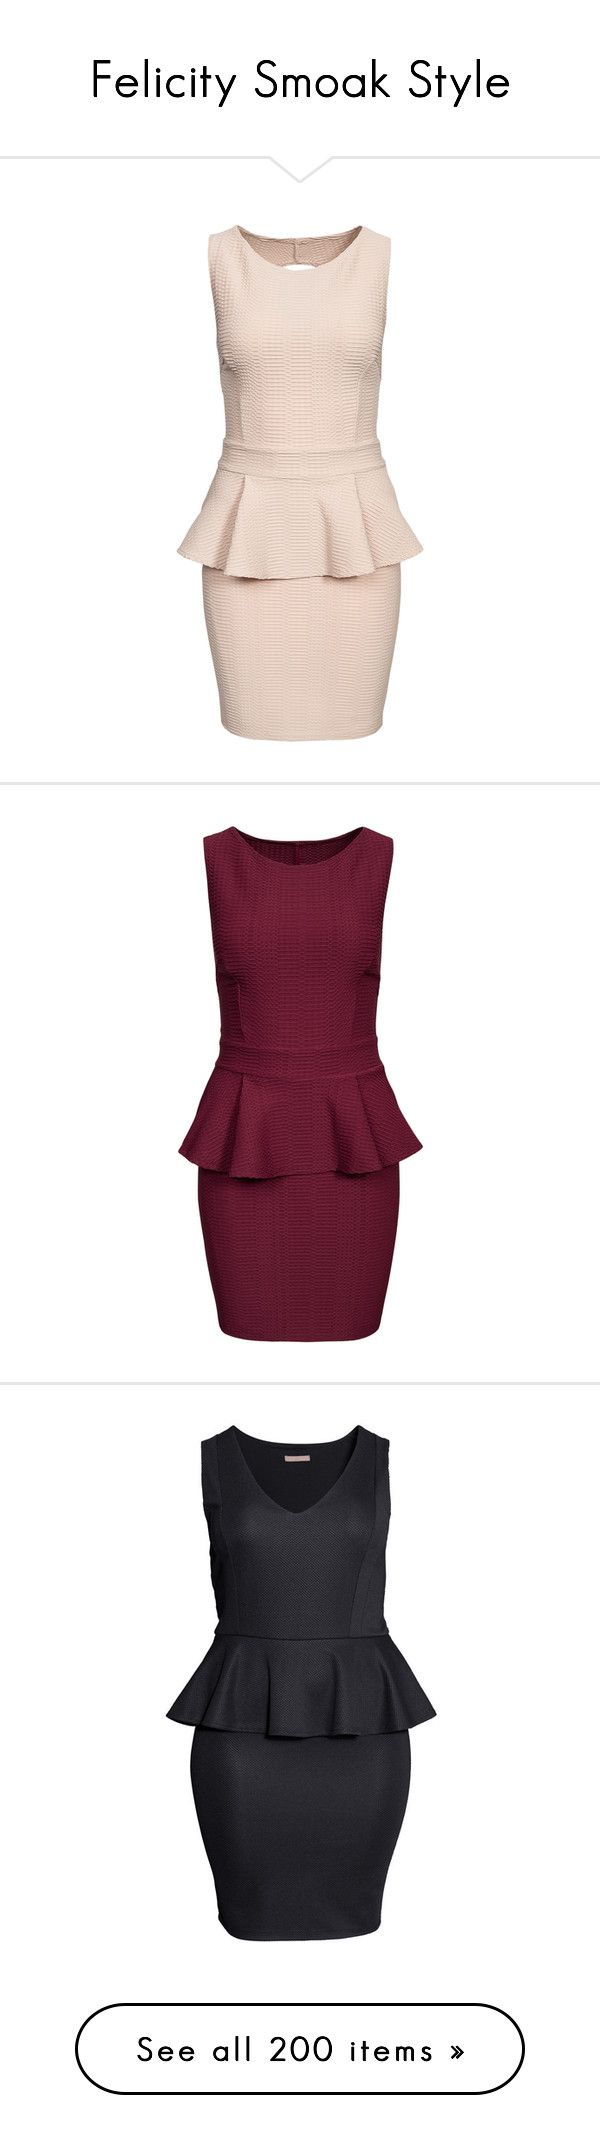 """""""Felicity Smoak Style"""" by sashlib ❤ liked on Polyvore featuring dresses, beige, party dresses, womens-fashion, pink frilly dress, peplum cocktail dress, bodycon dress, peplum dress, bodycon cocktail dress and burgundy"""